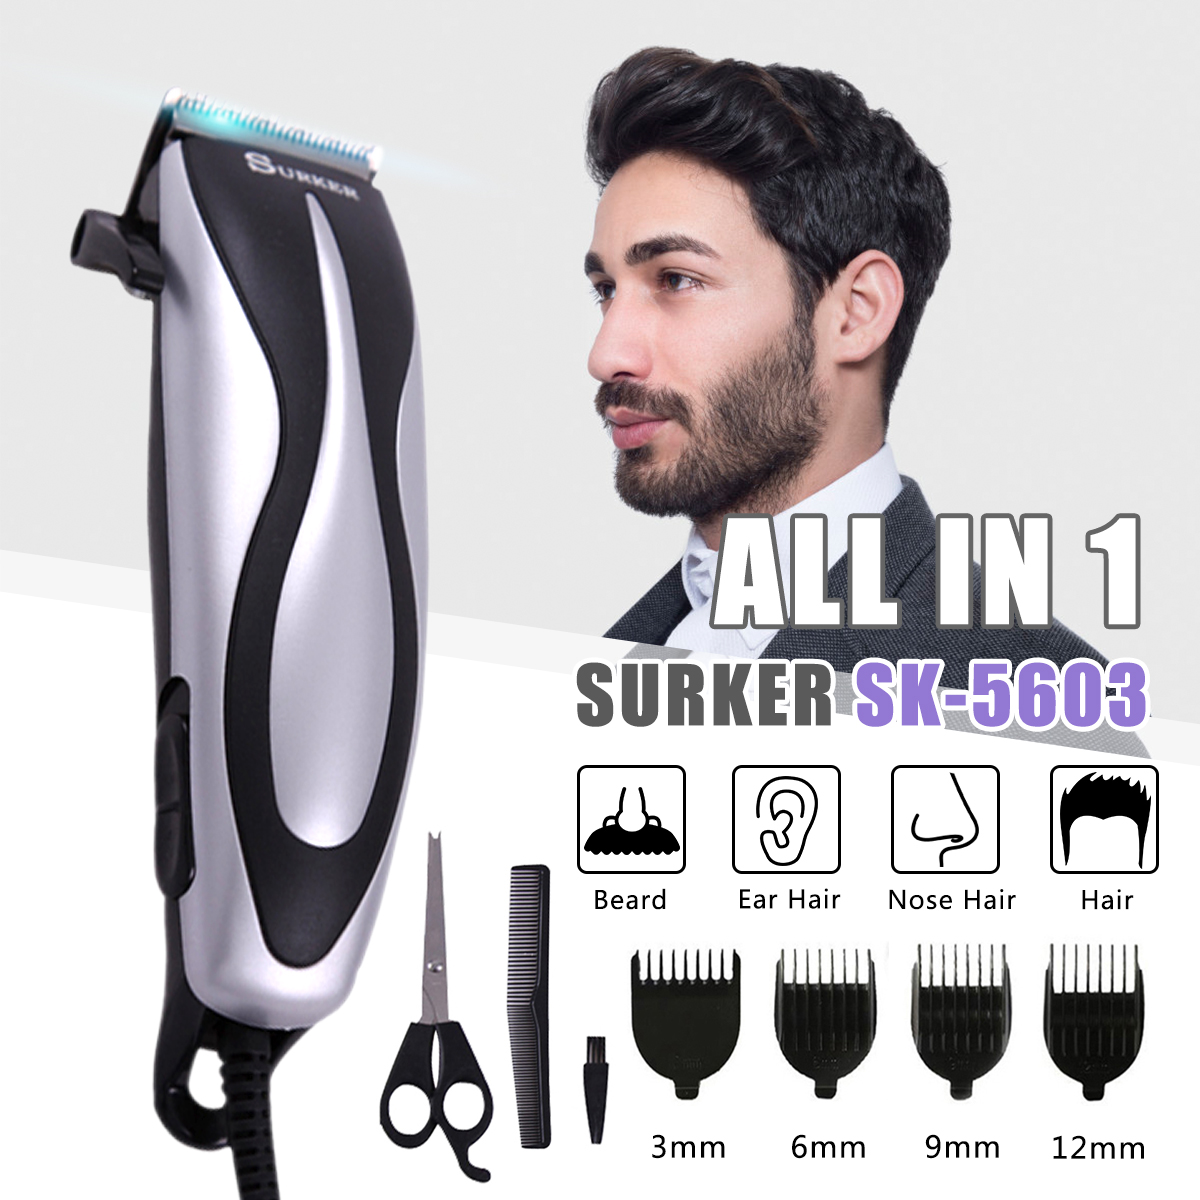 SURKER SK-5603 Electric Corded Hair Trimmer Professional Family Barber Haircut Machine with Haircut Comb Hair Clipper EU Plug new surker hc 575 rechargeable silent electric trimmer hair trimmer led display electric fader haircut machine with eu plug